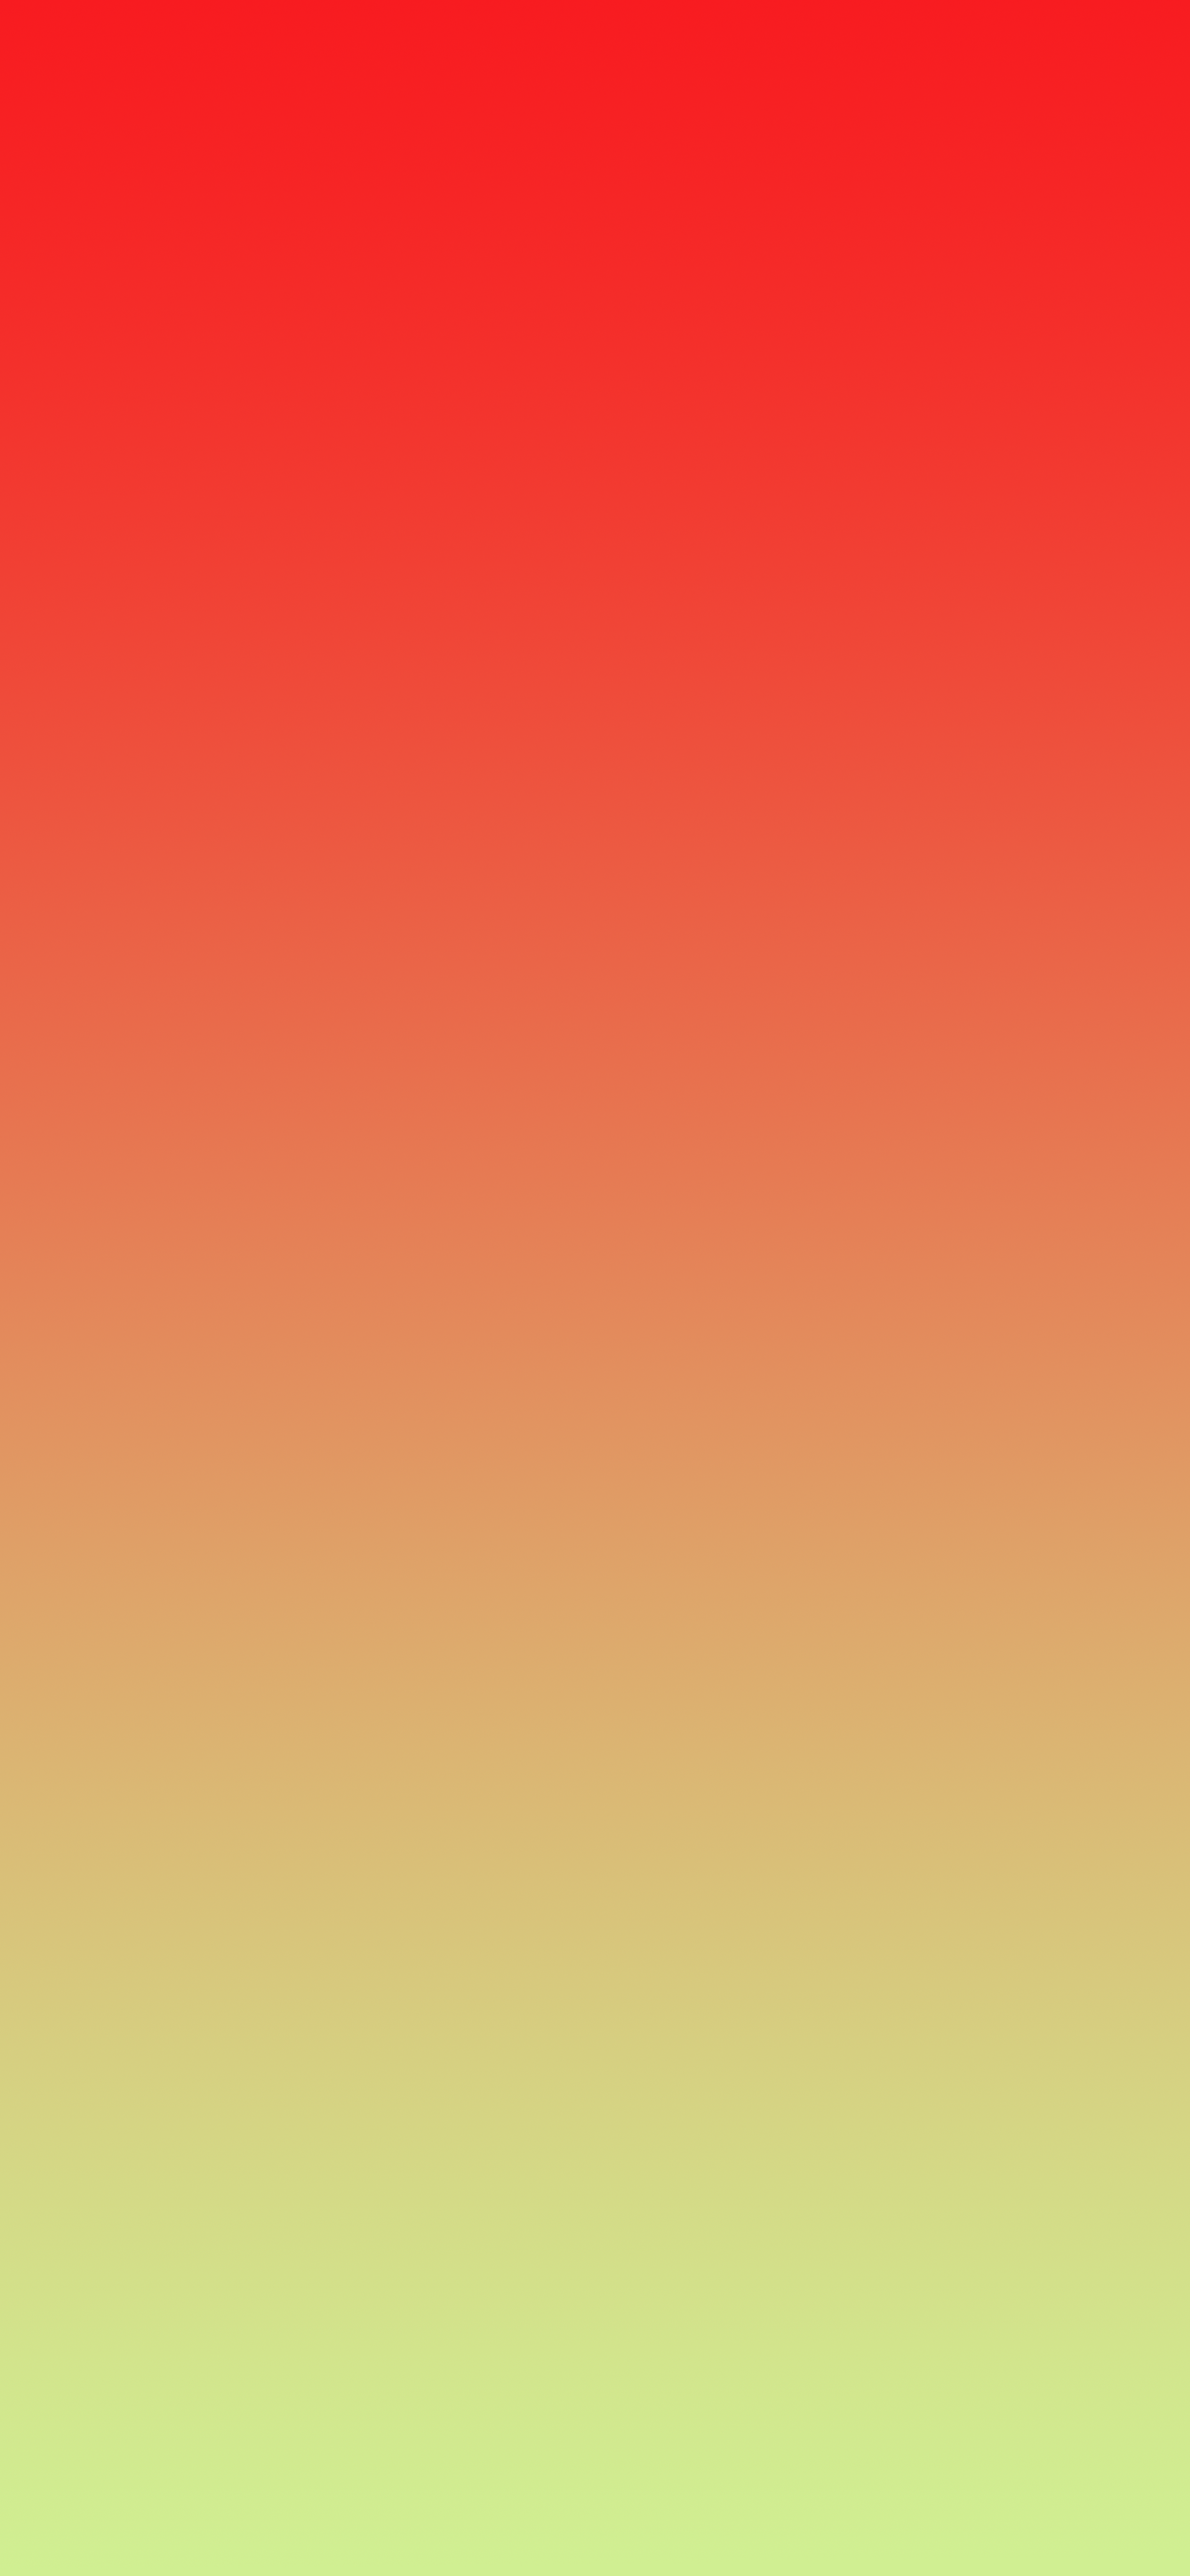 iPhone wallpaper gradient orange red Gradient Colors